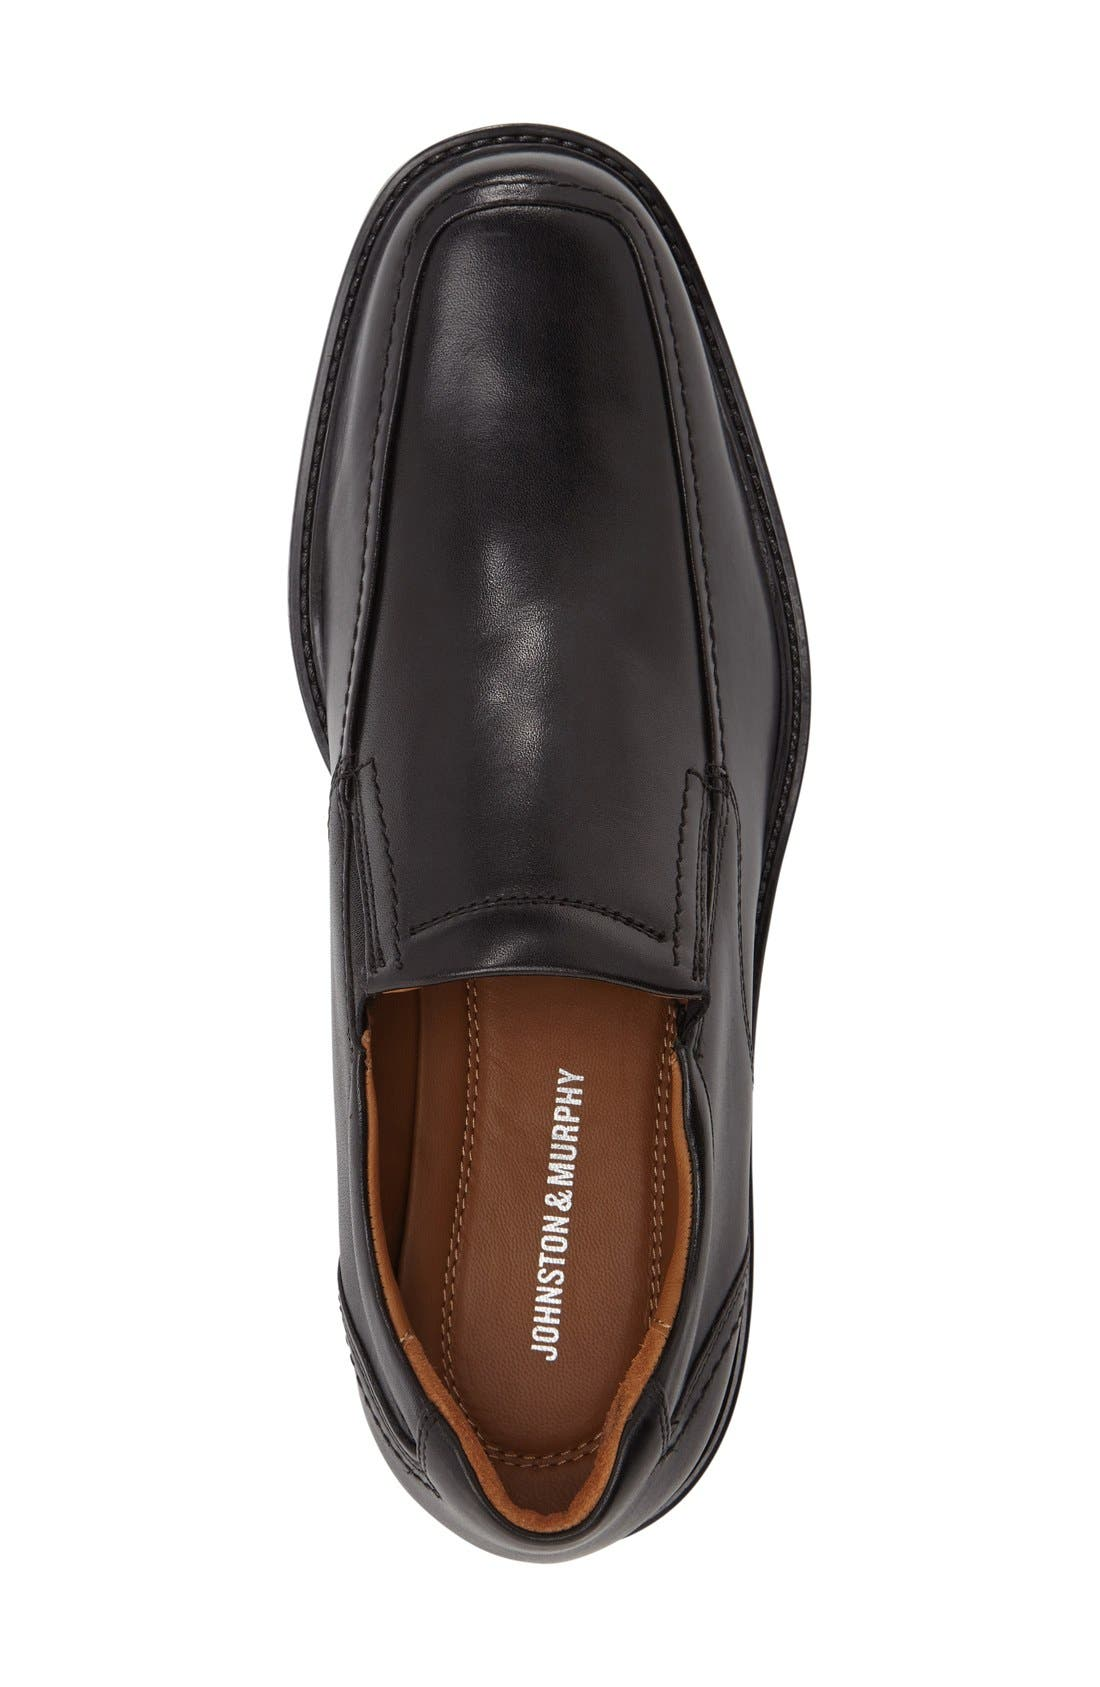 Tabor Venetian Loafer,                             Alternate thumbnail 3, color,                             Black Leather